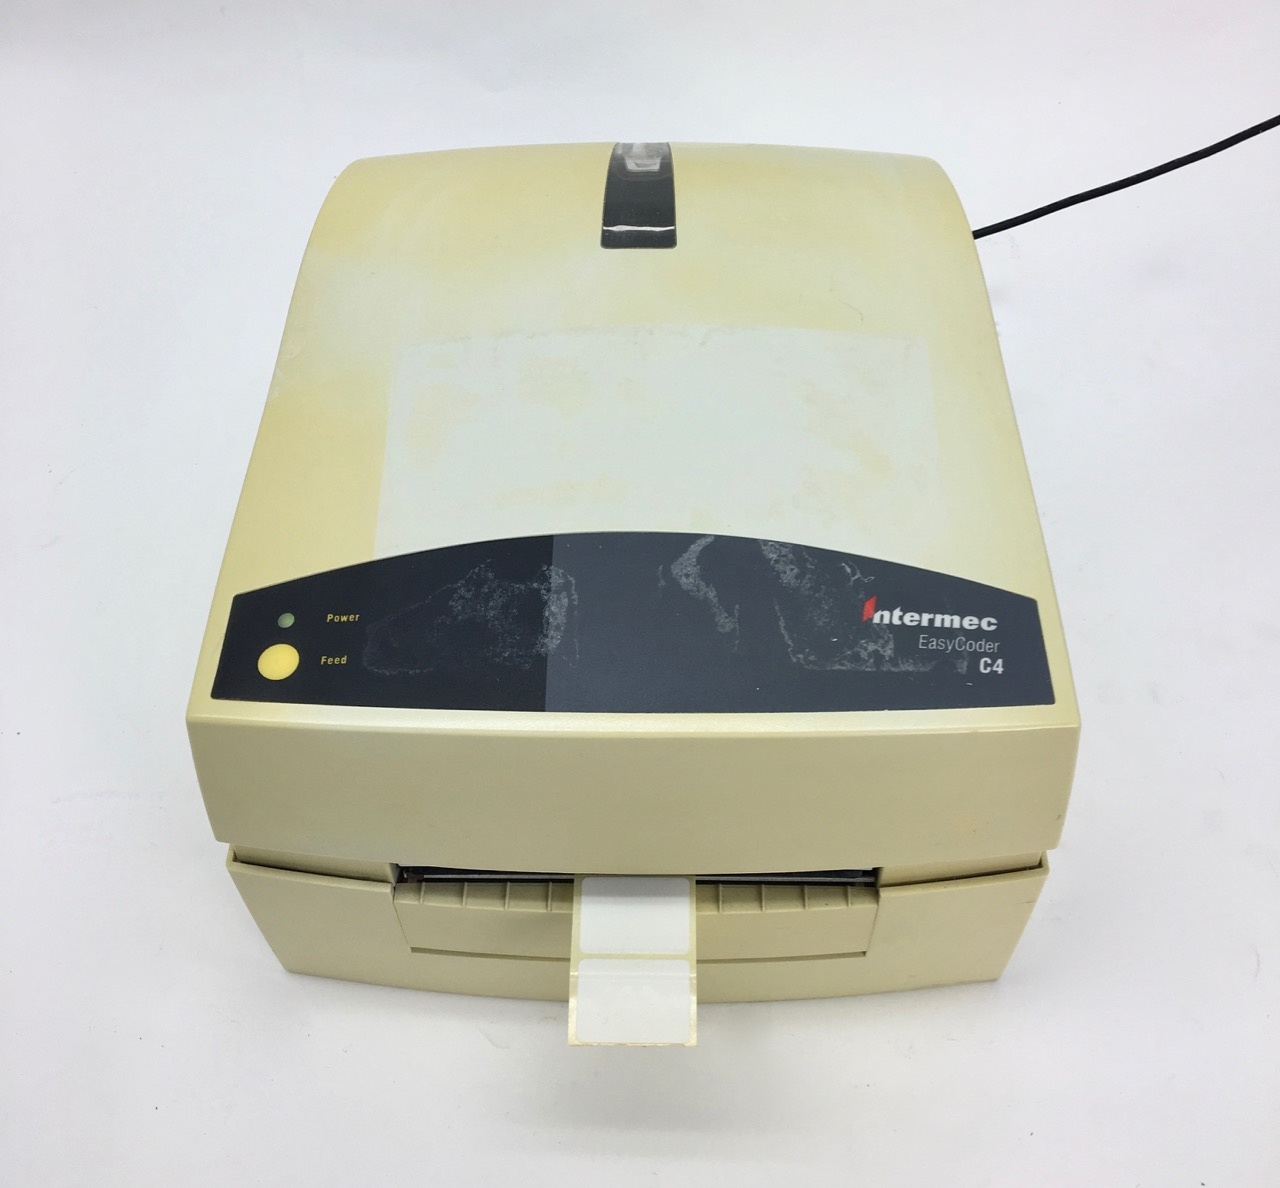 Intermec Intermec EasyCoder PC4 Label Printer